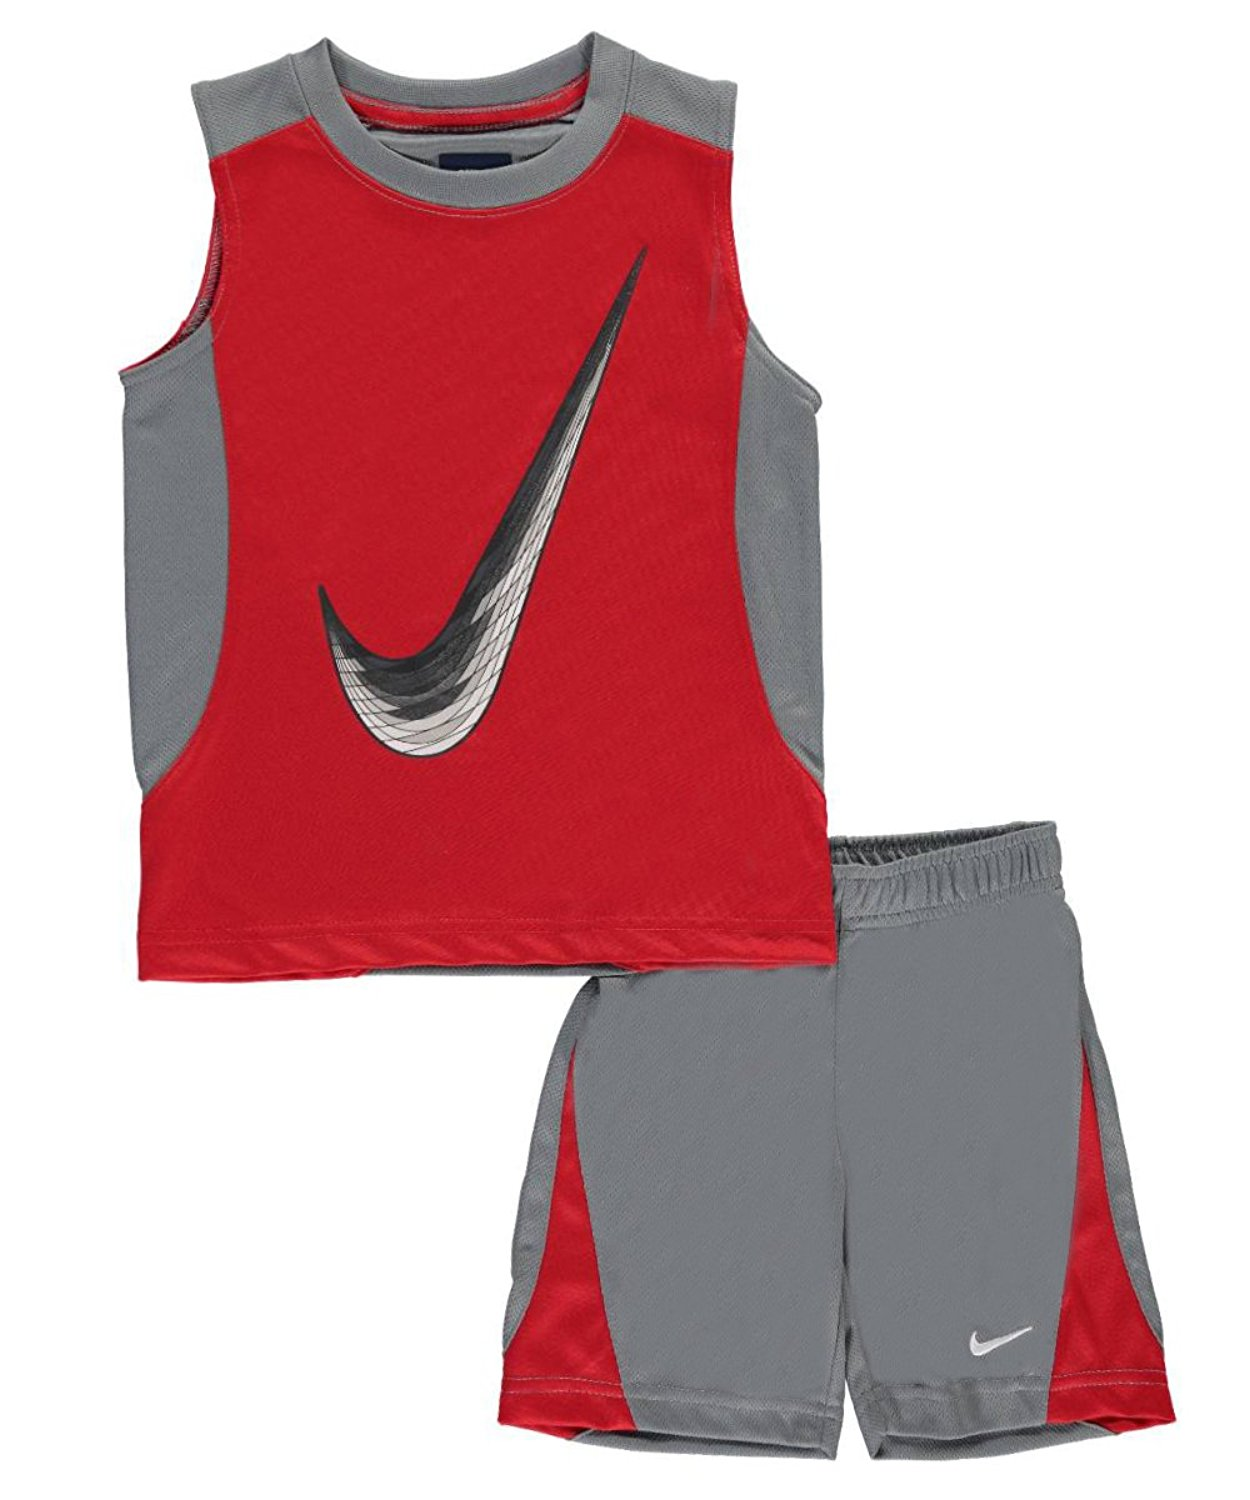 Nike Little Boys' 2-Piece Outfit (Sizes 4 - 7)